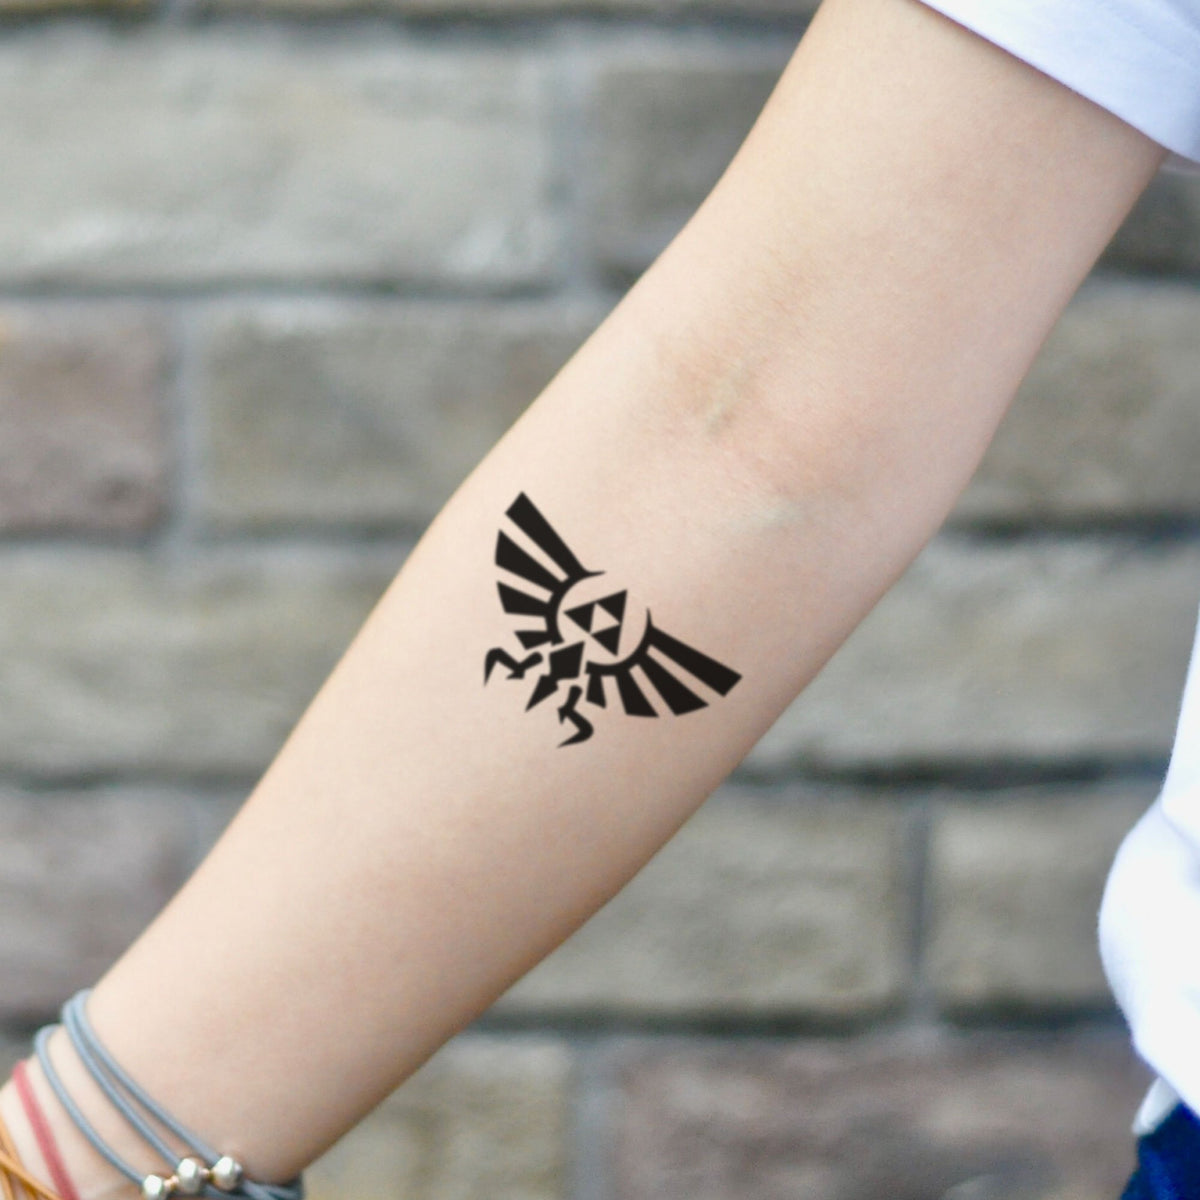 Legend Of Zelda Temporary Tattoo Sticker Ohmytat